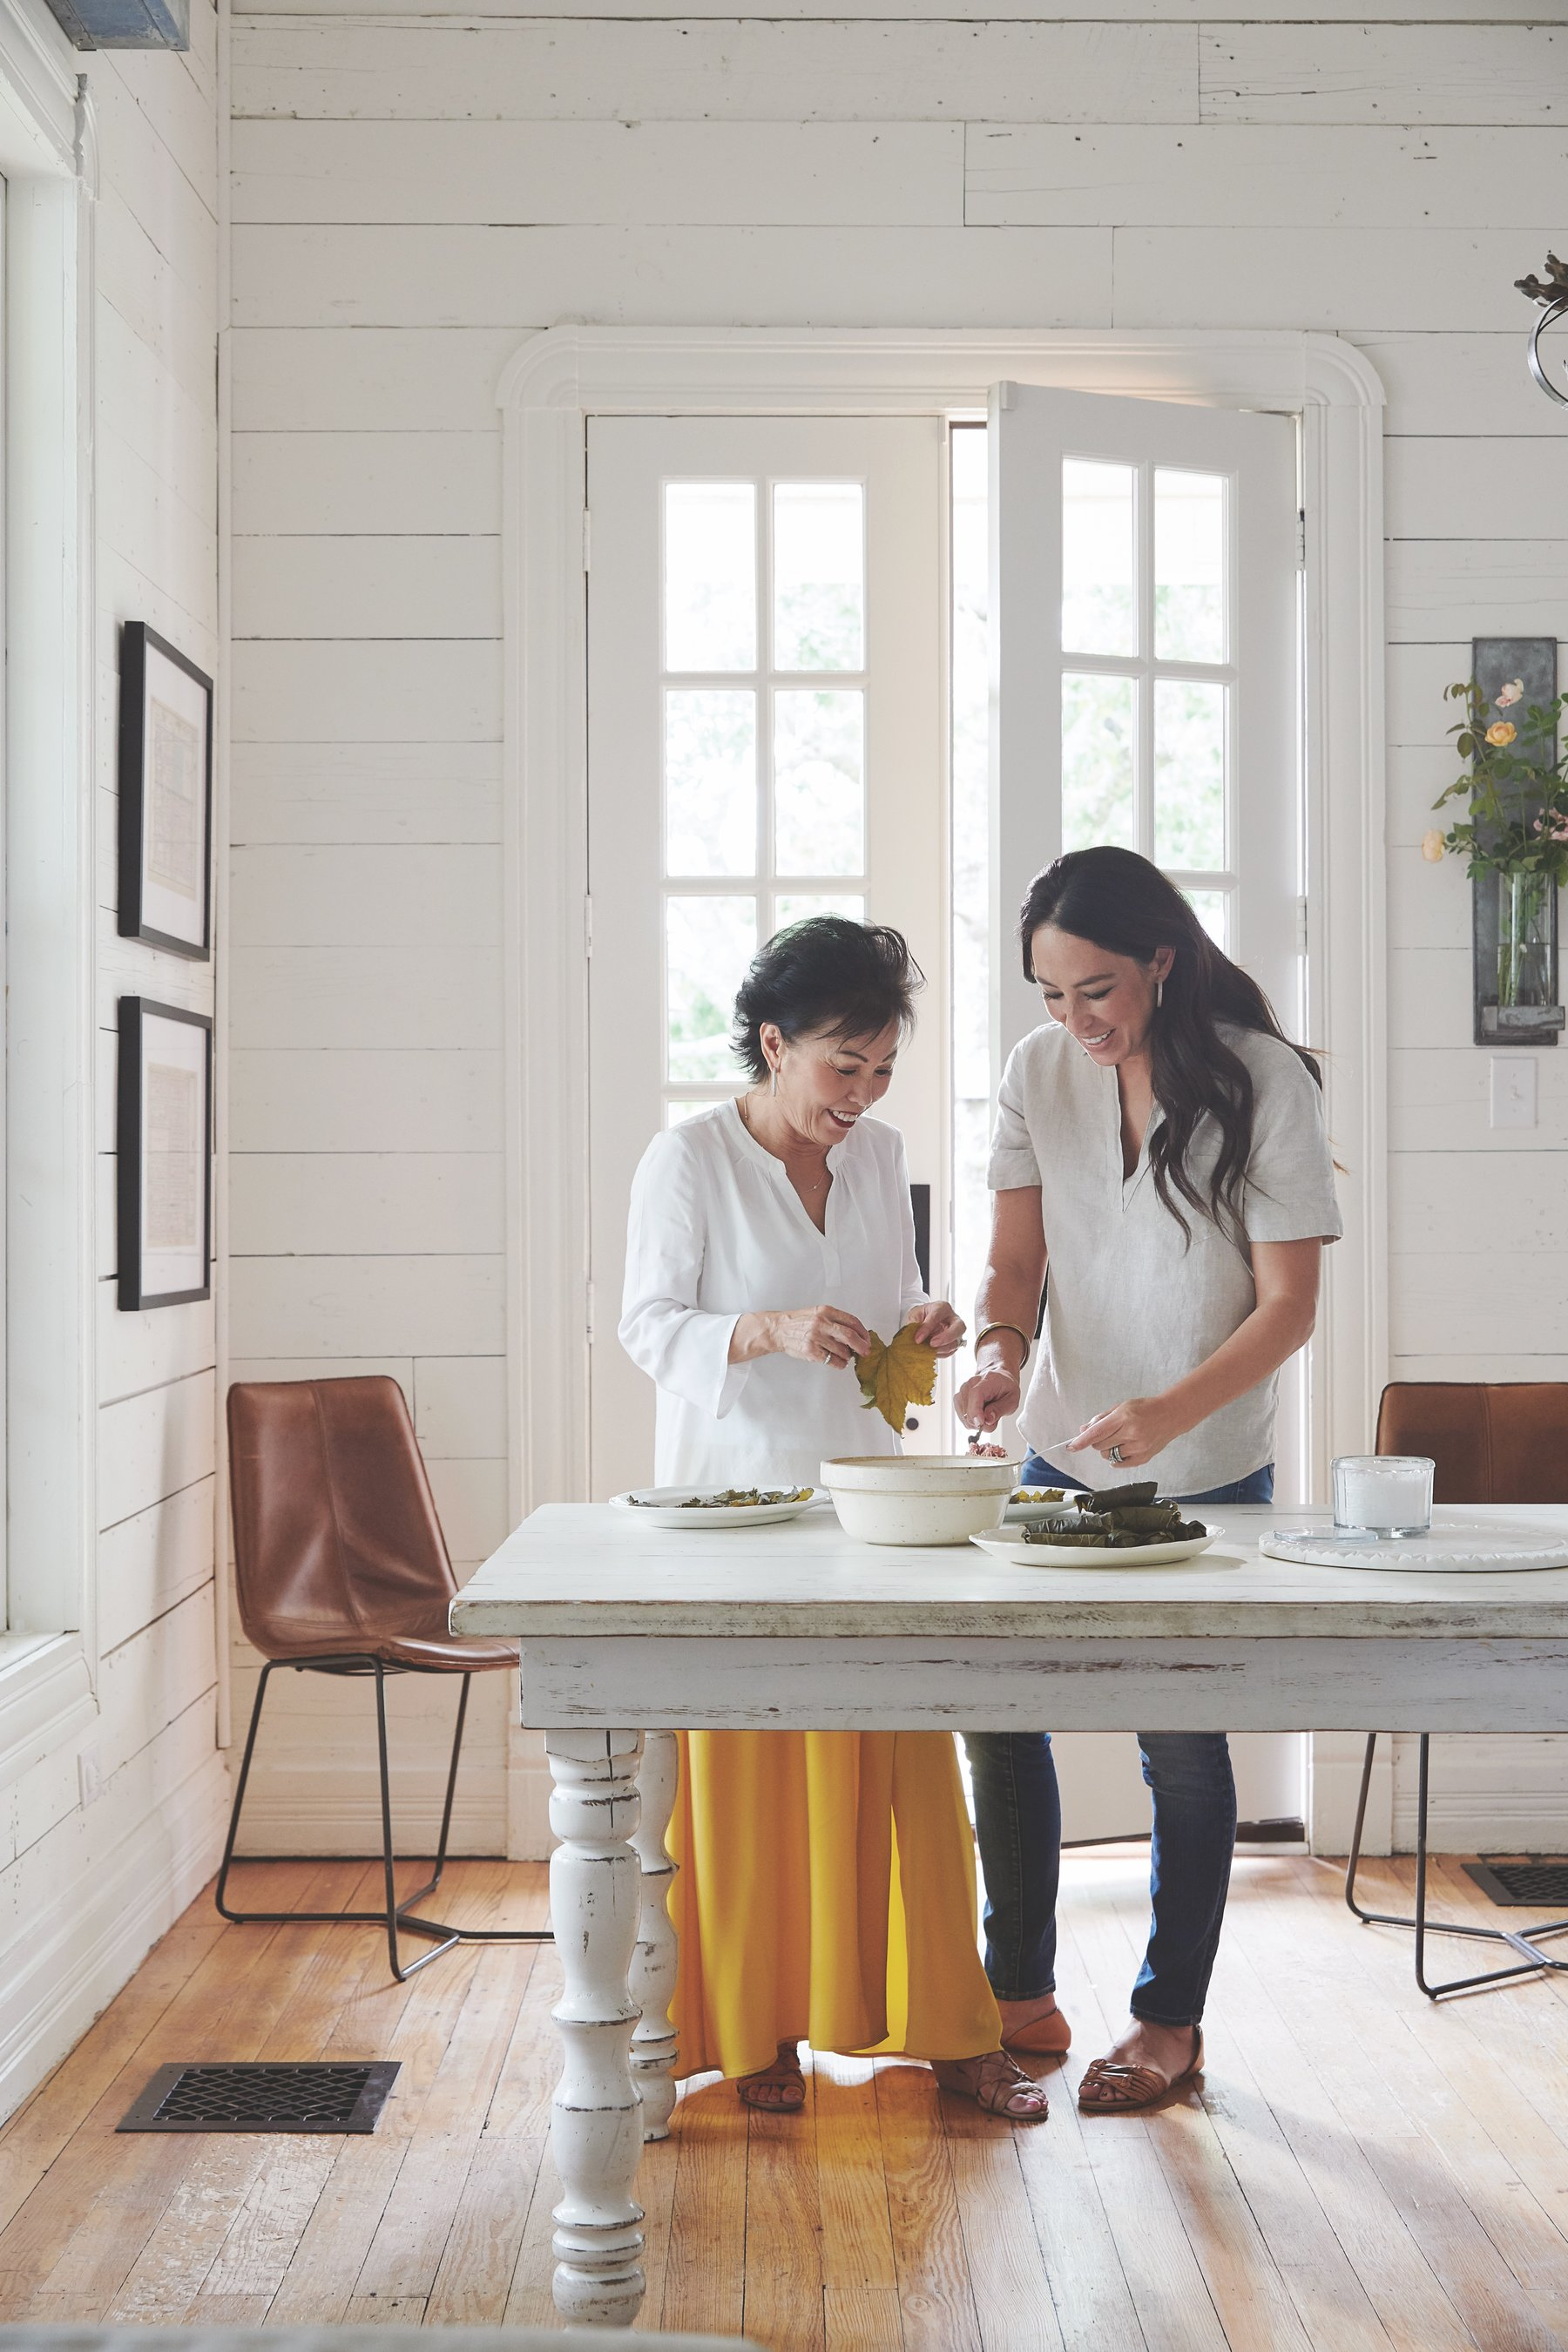 For Joanna Gaines Home Is The Heart Of A Food And Design Empire The New York Times